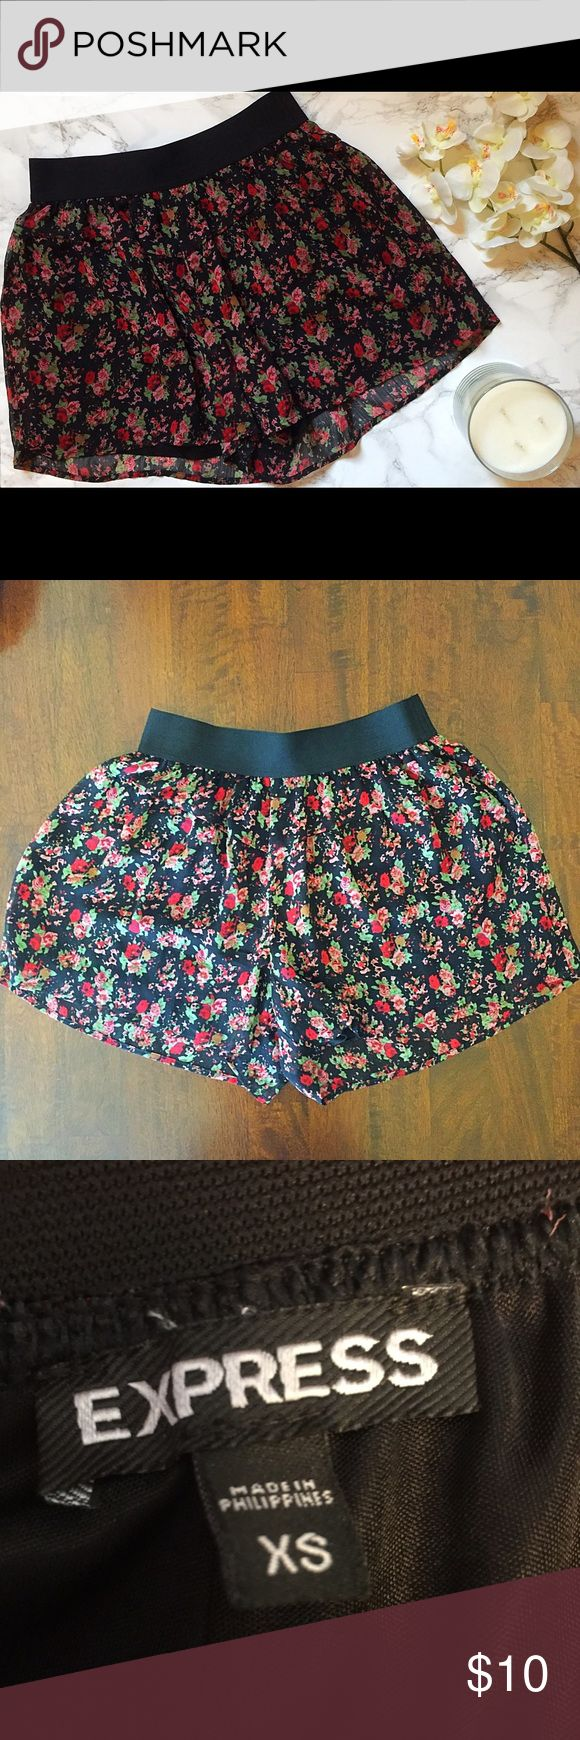 Floral print shorts These flowy, floral print shirts may look like a skirt, but they aren't, I promise! (Ladies, think trying to bend ice in a skirt-then you'll know why these shorts are amazing!) These have a black lining inside, with a sheer black, red, pink, and green sheer overlay. Also has a black elastic waistband. In wonderful condition! Express Shorts